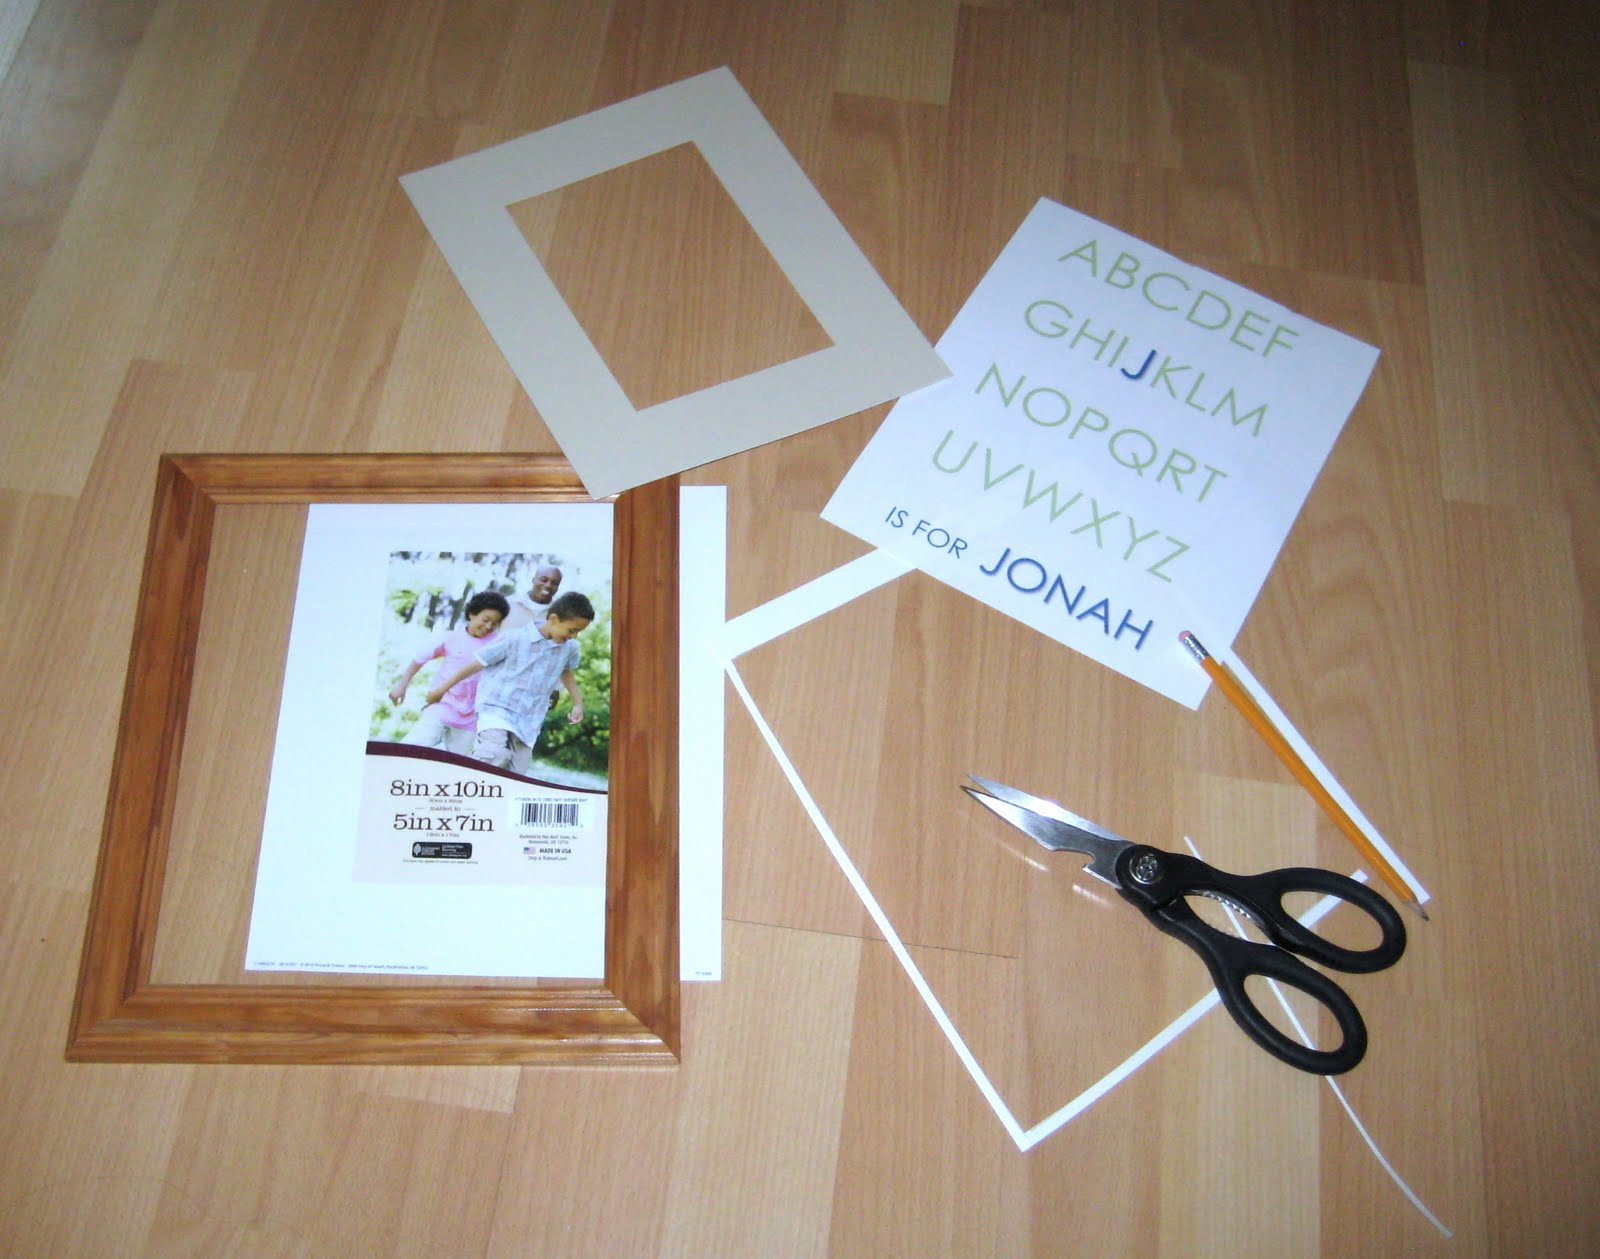 Craft 87 personalized baby shower gift craft as for the details the frame is an 810 from wal mart for 3 i printed it on 8 12 x 11 card stock and cut it down to fit the frame negle Images